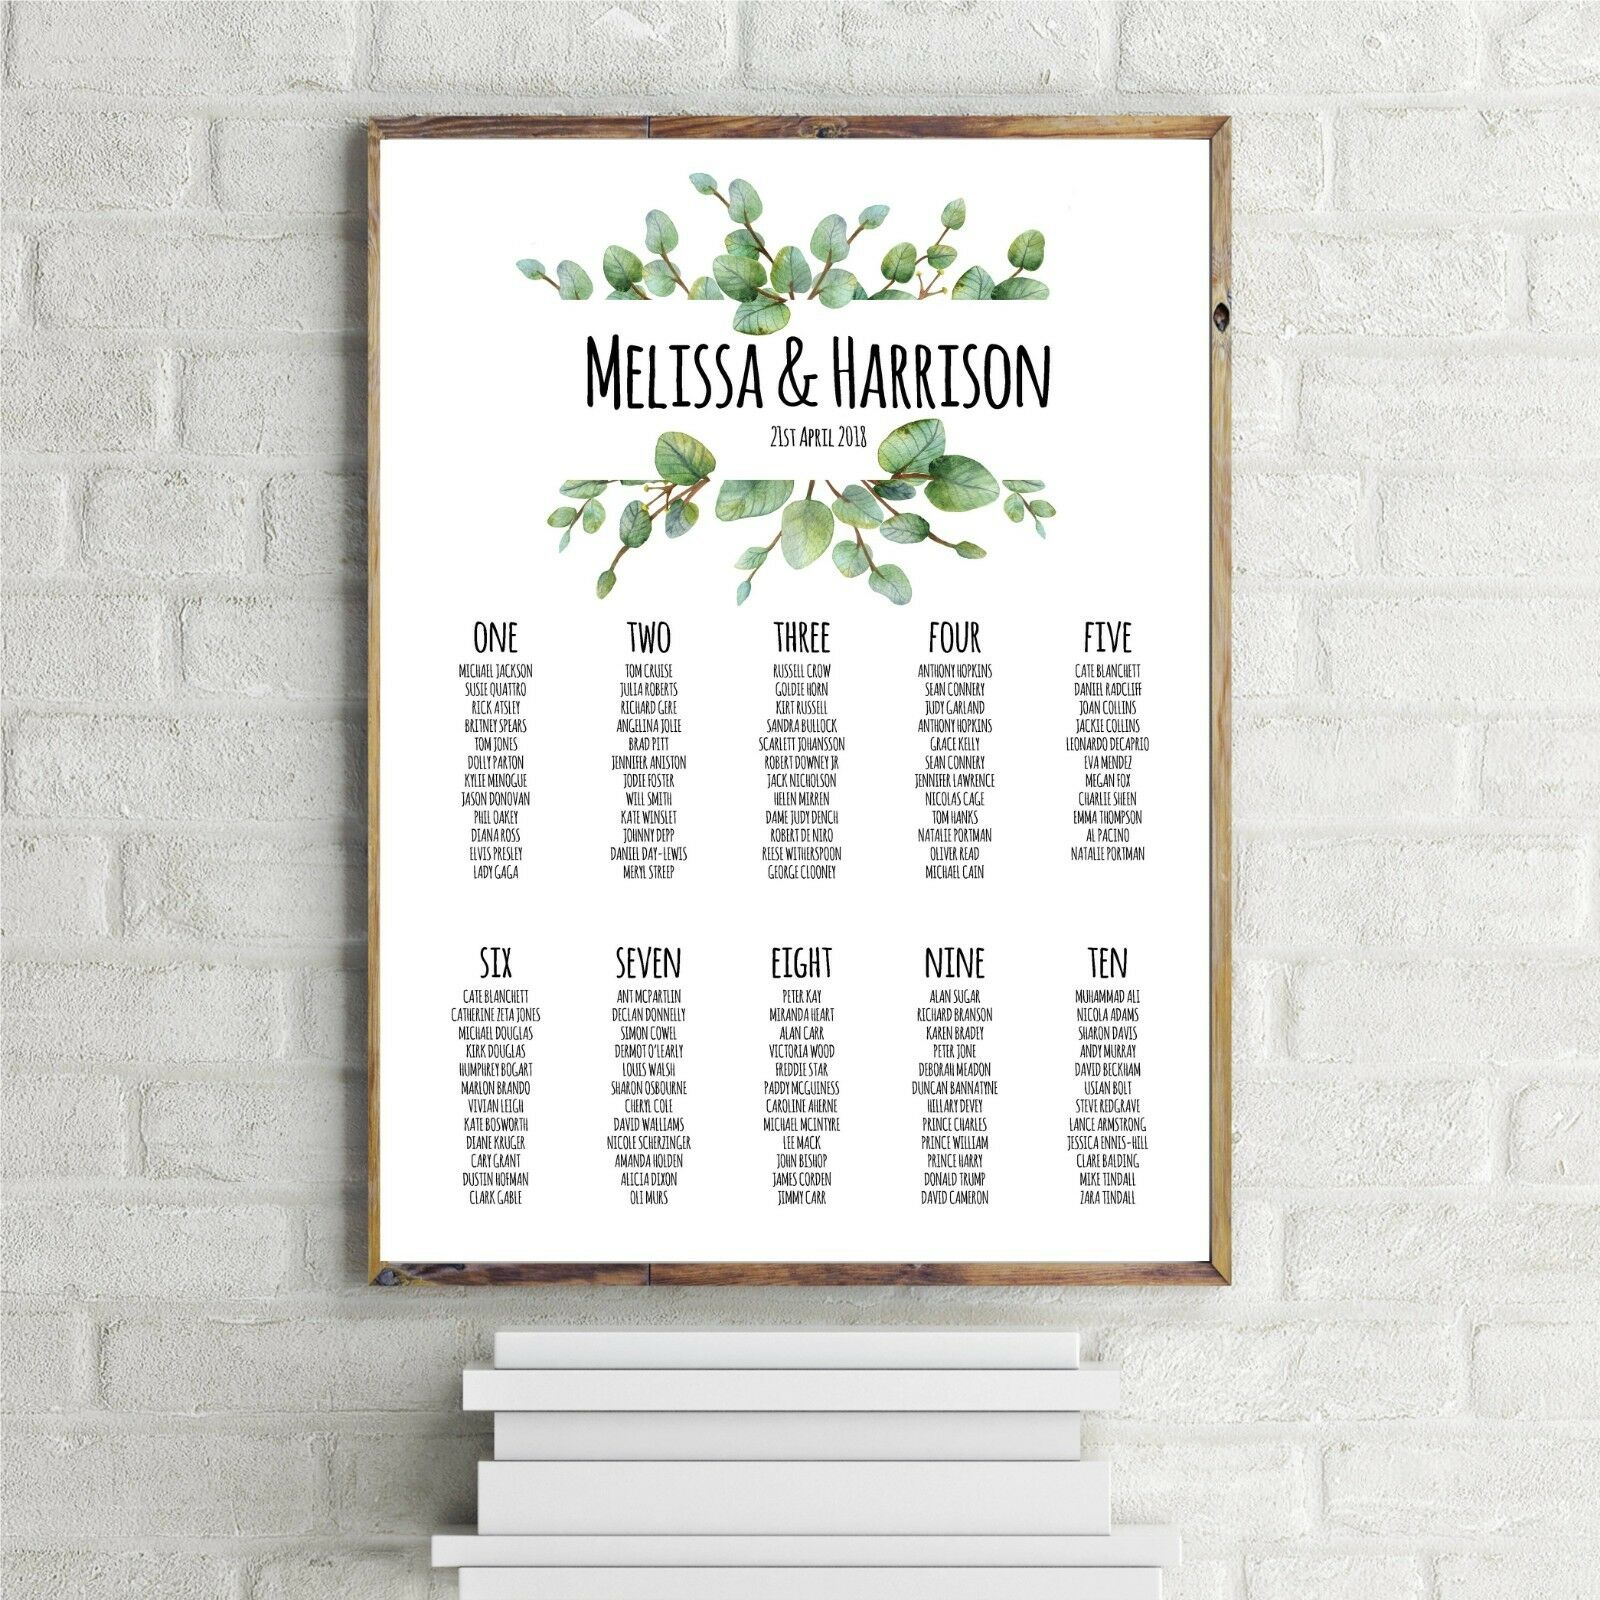 Personalised 'Melissa' design Wedding Table Seating Plan A1 A2 UNFRAMED